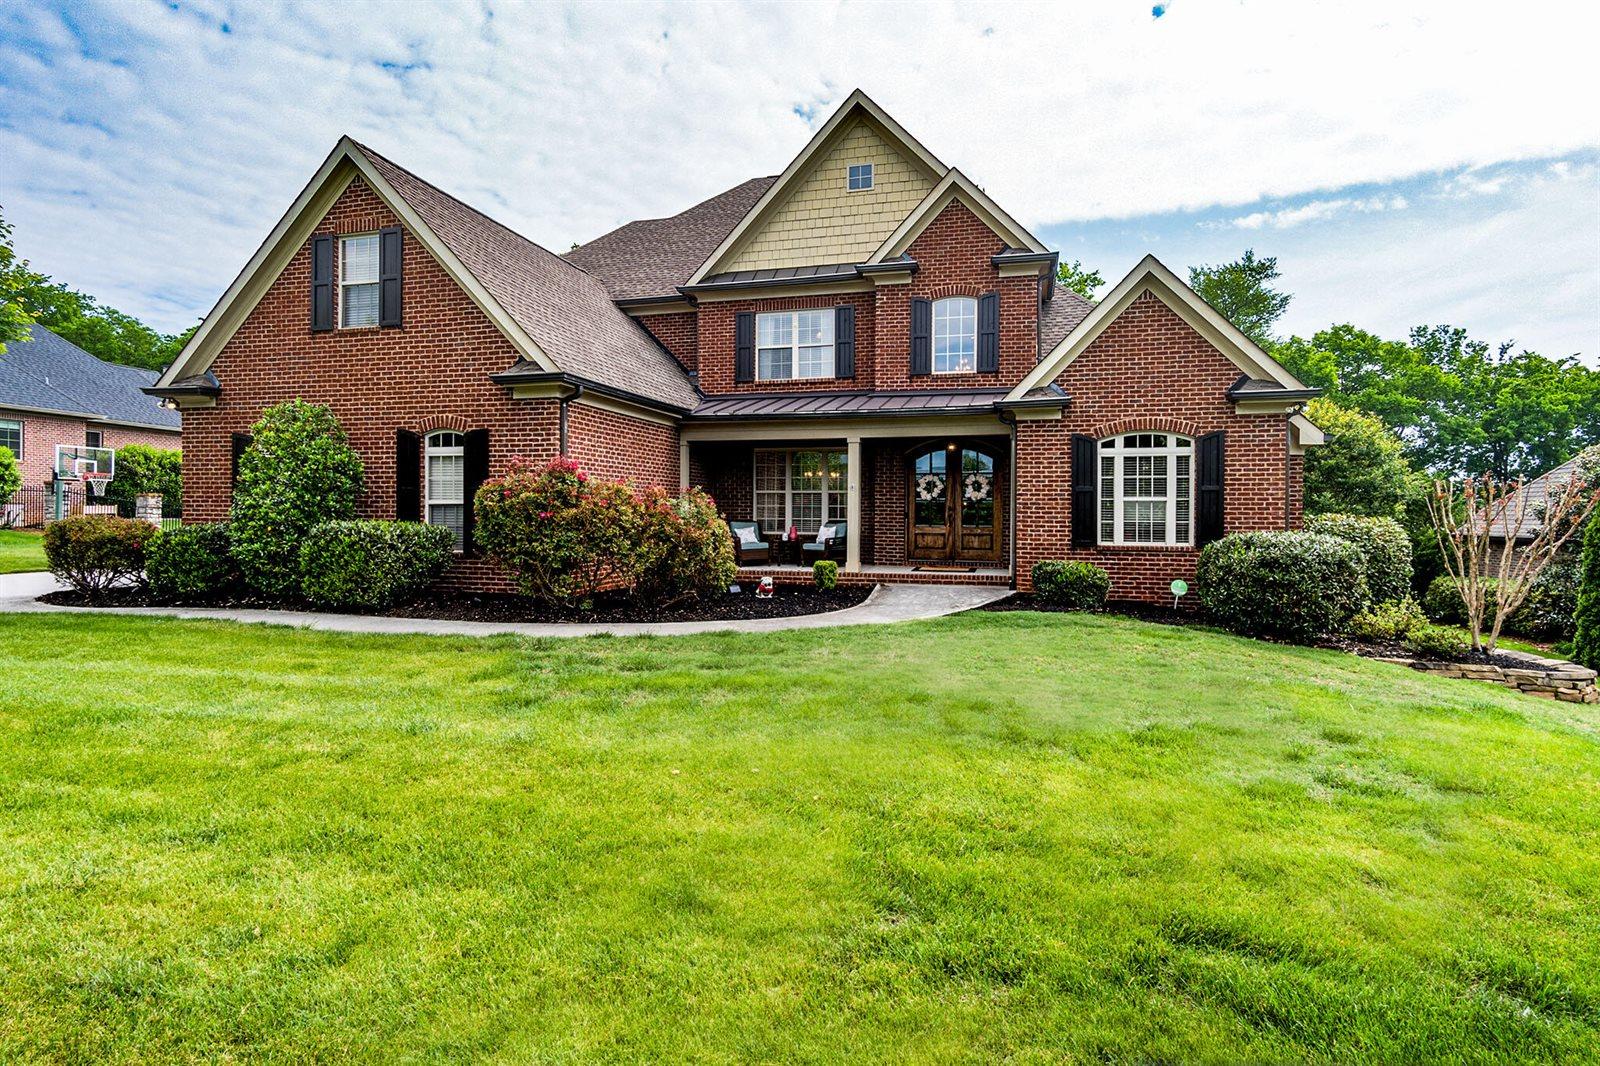 1344 Copperstone Lane, Knoxville, TN 37922